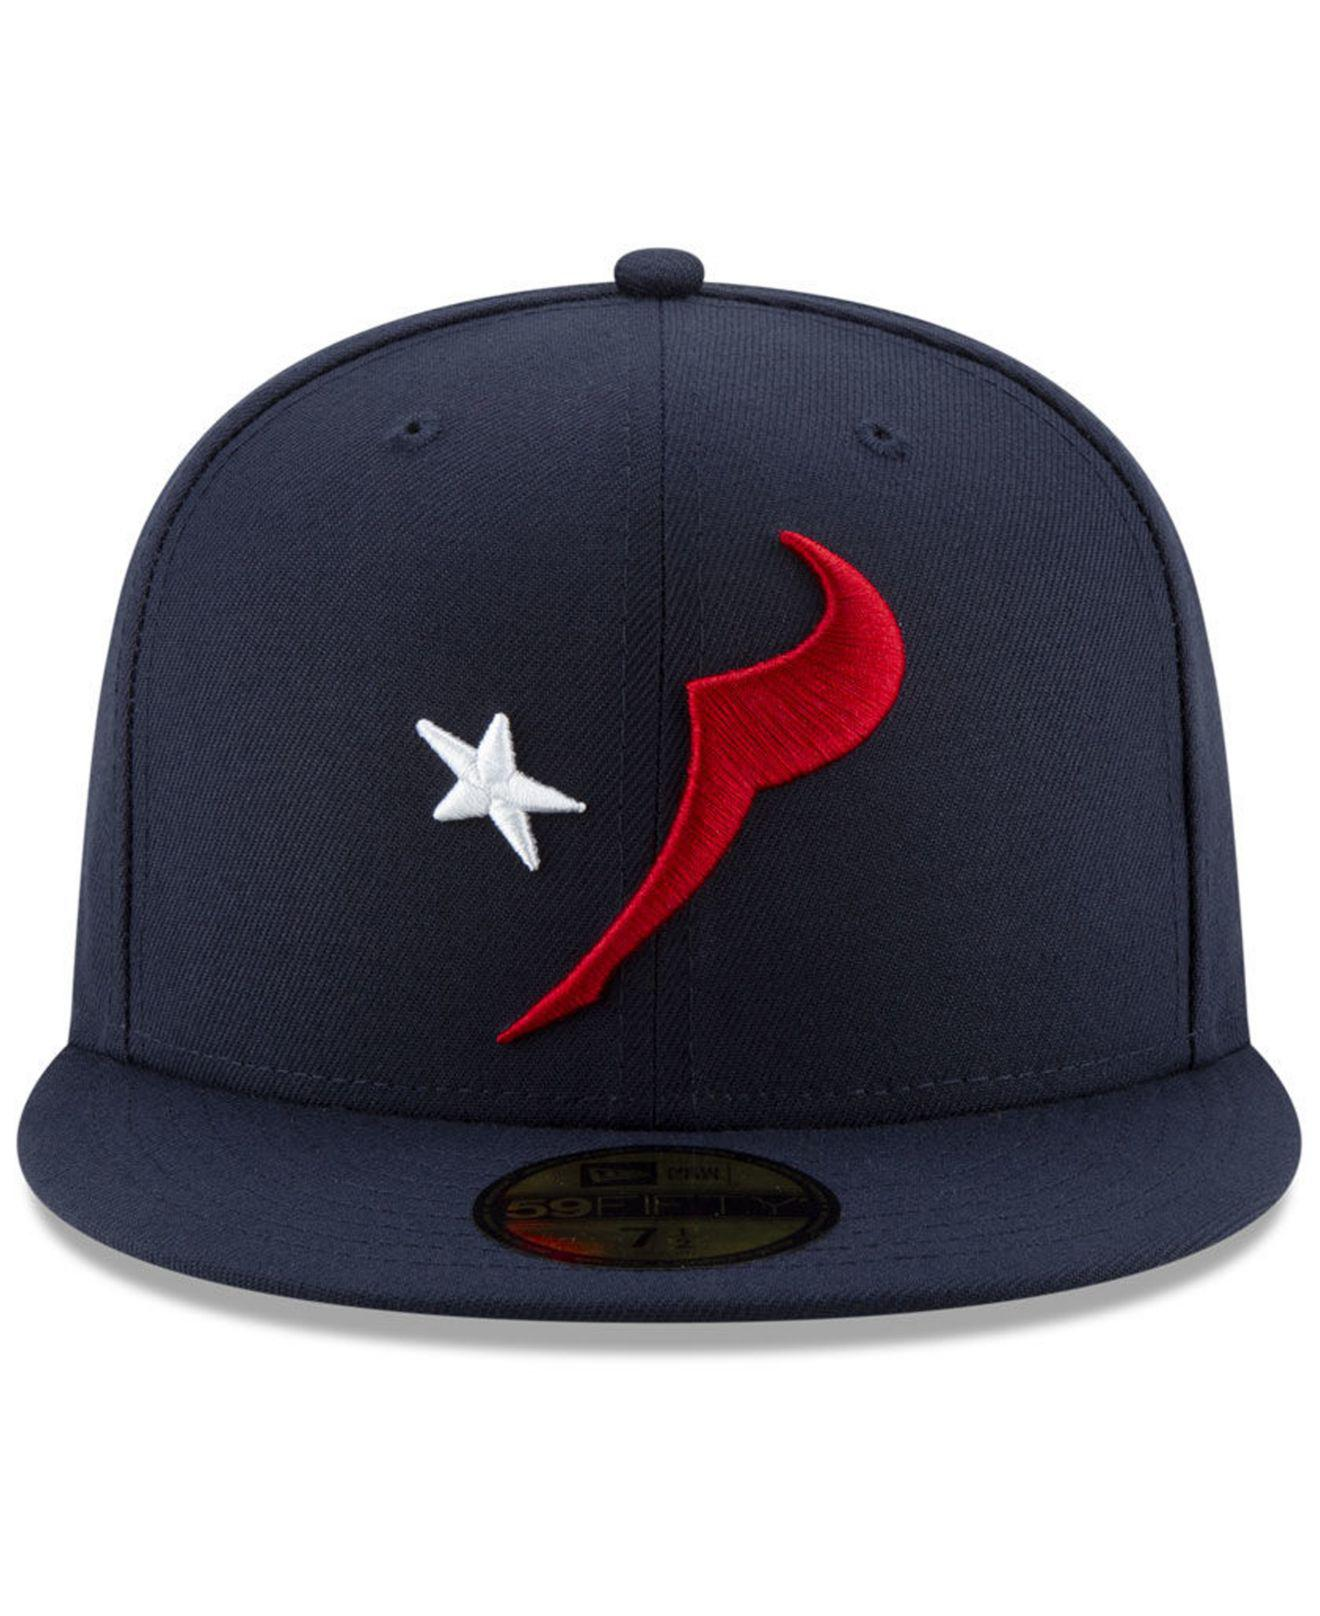 de0b0e50aee Lyst - KTZ Houston Texans Logo Elements Collection 59fifty Fitted Cap in  Blue